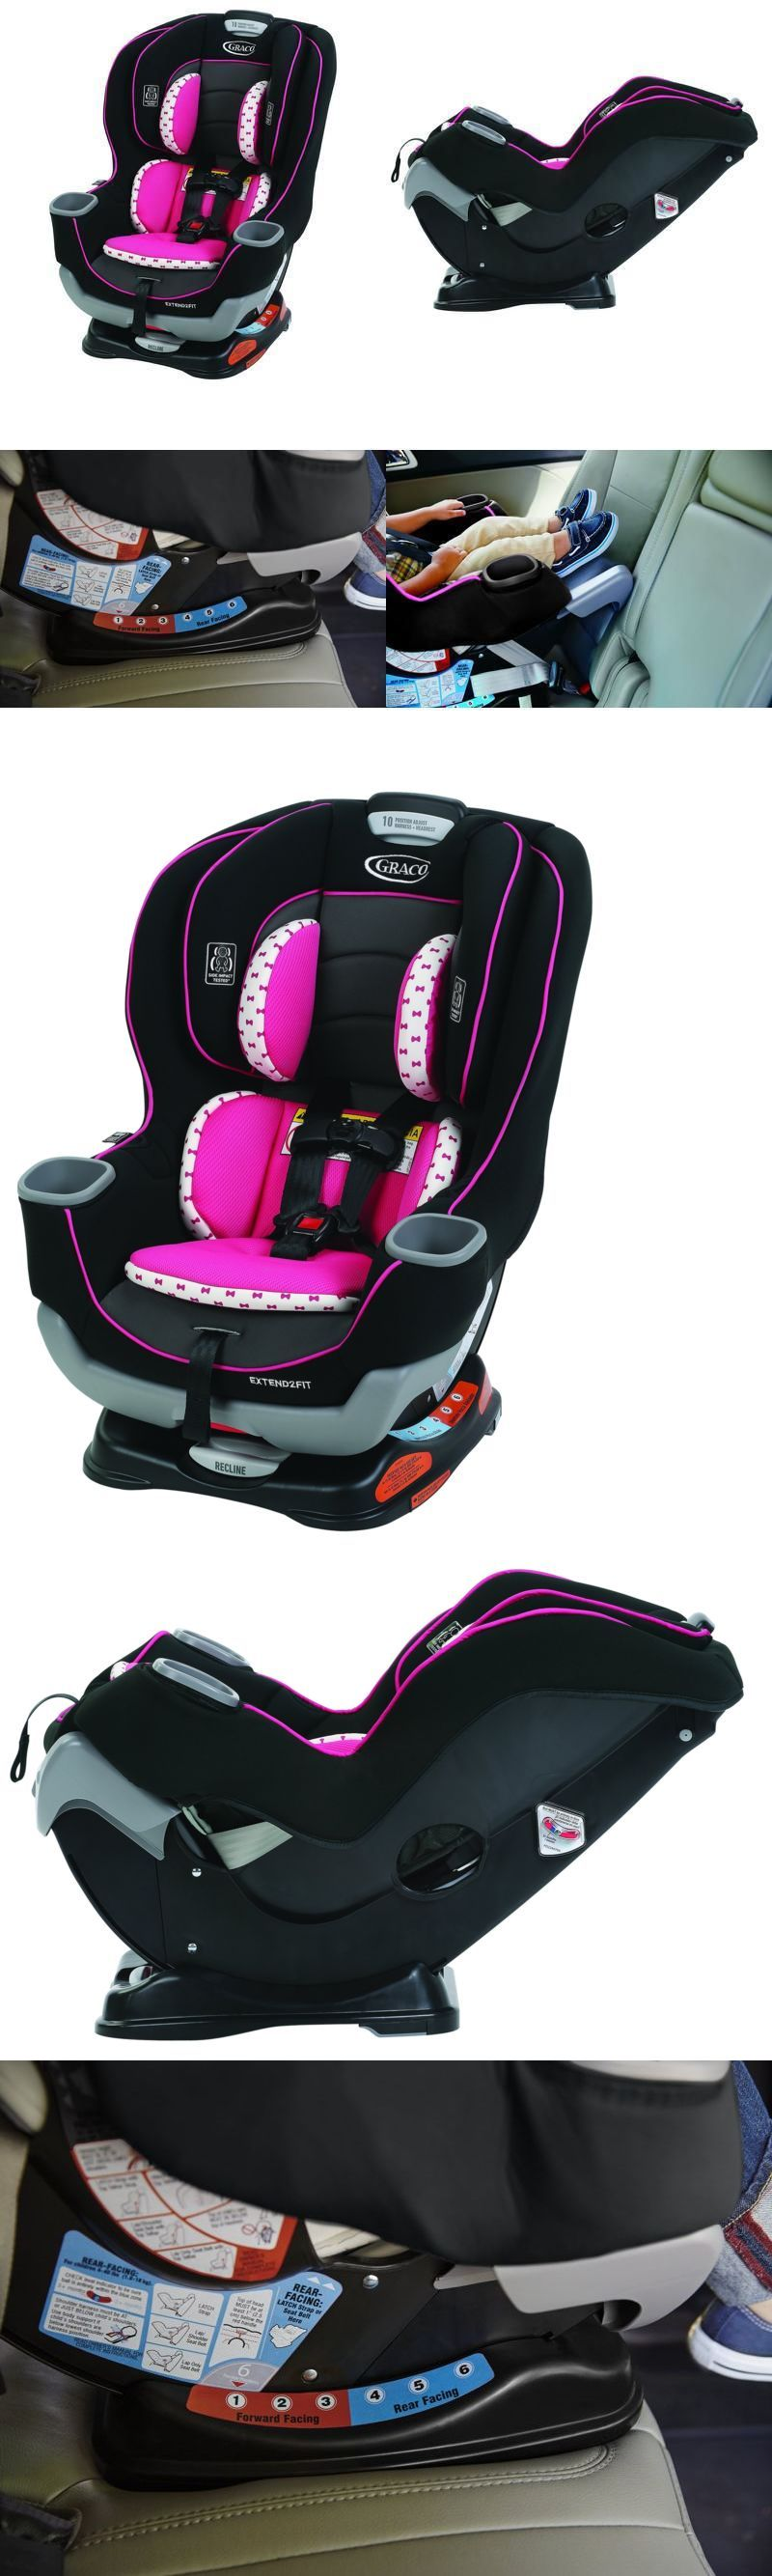 Other Car Safety Seats 2987 Convertible Seat Graco Extend2fit Baby Infant Vehicle Xmas